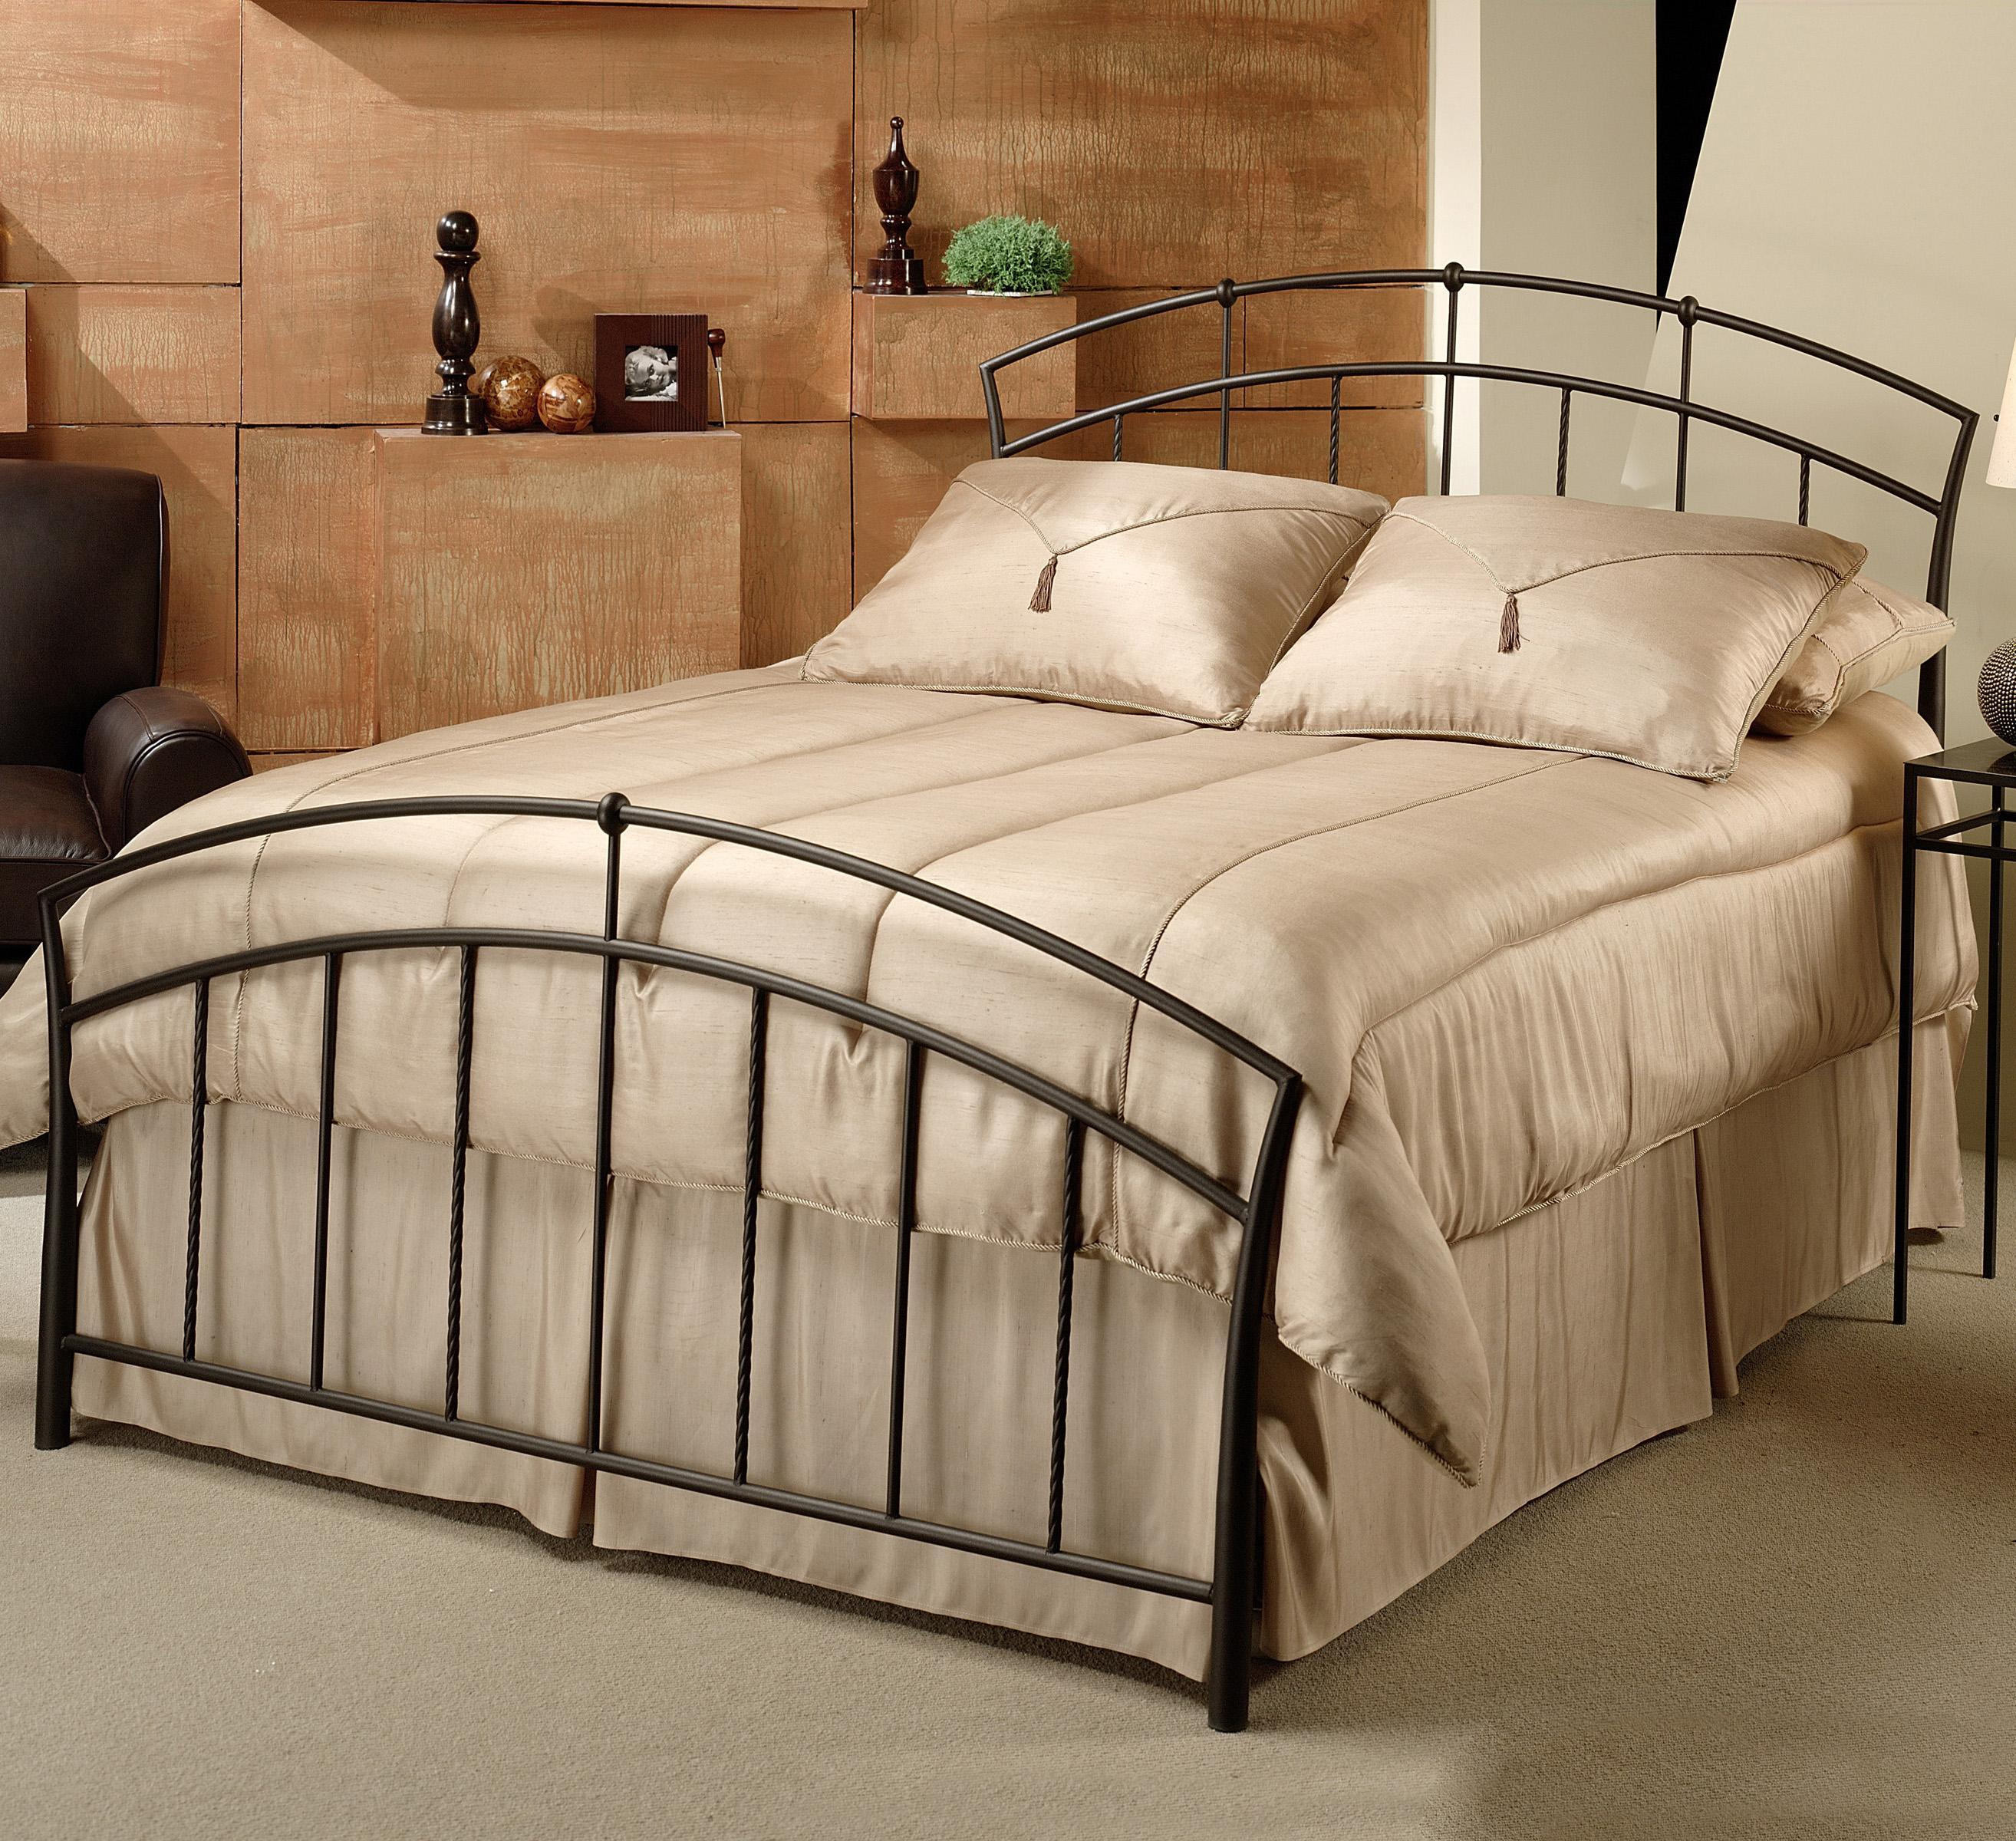 Hillsdale Metal Beds King Vancouver Bed - Item Number: 1024BKR